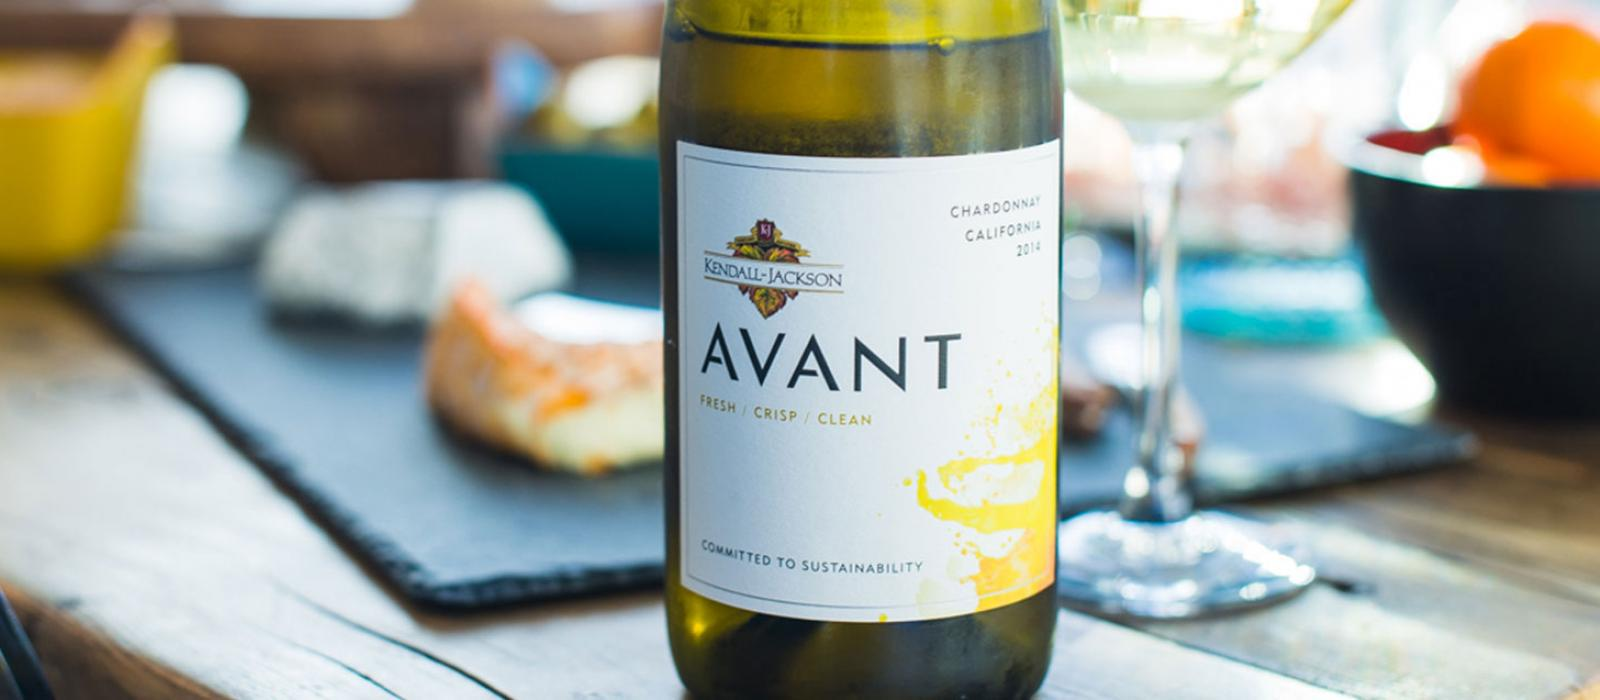 K-J AVANT Wine Collection: Sauvignon Blanc, Red Blend, and Chardonnay